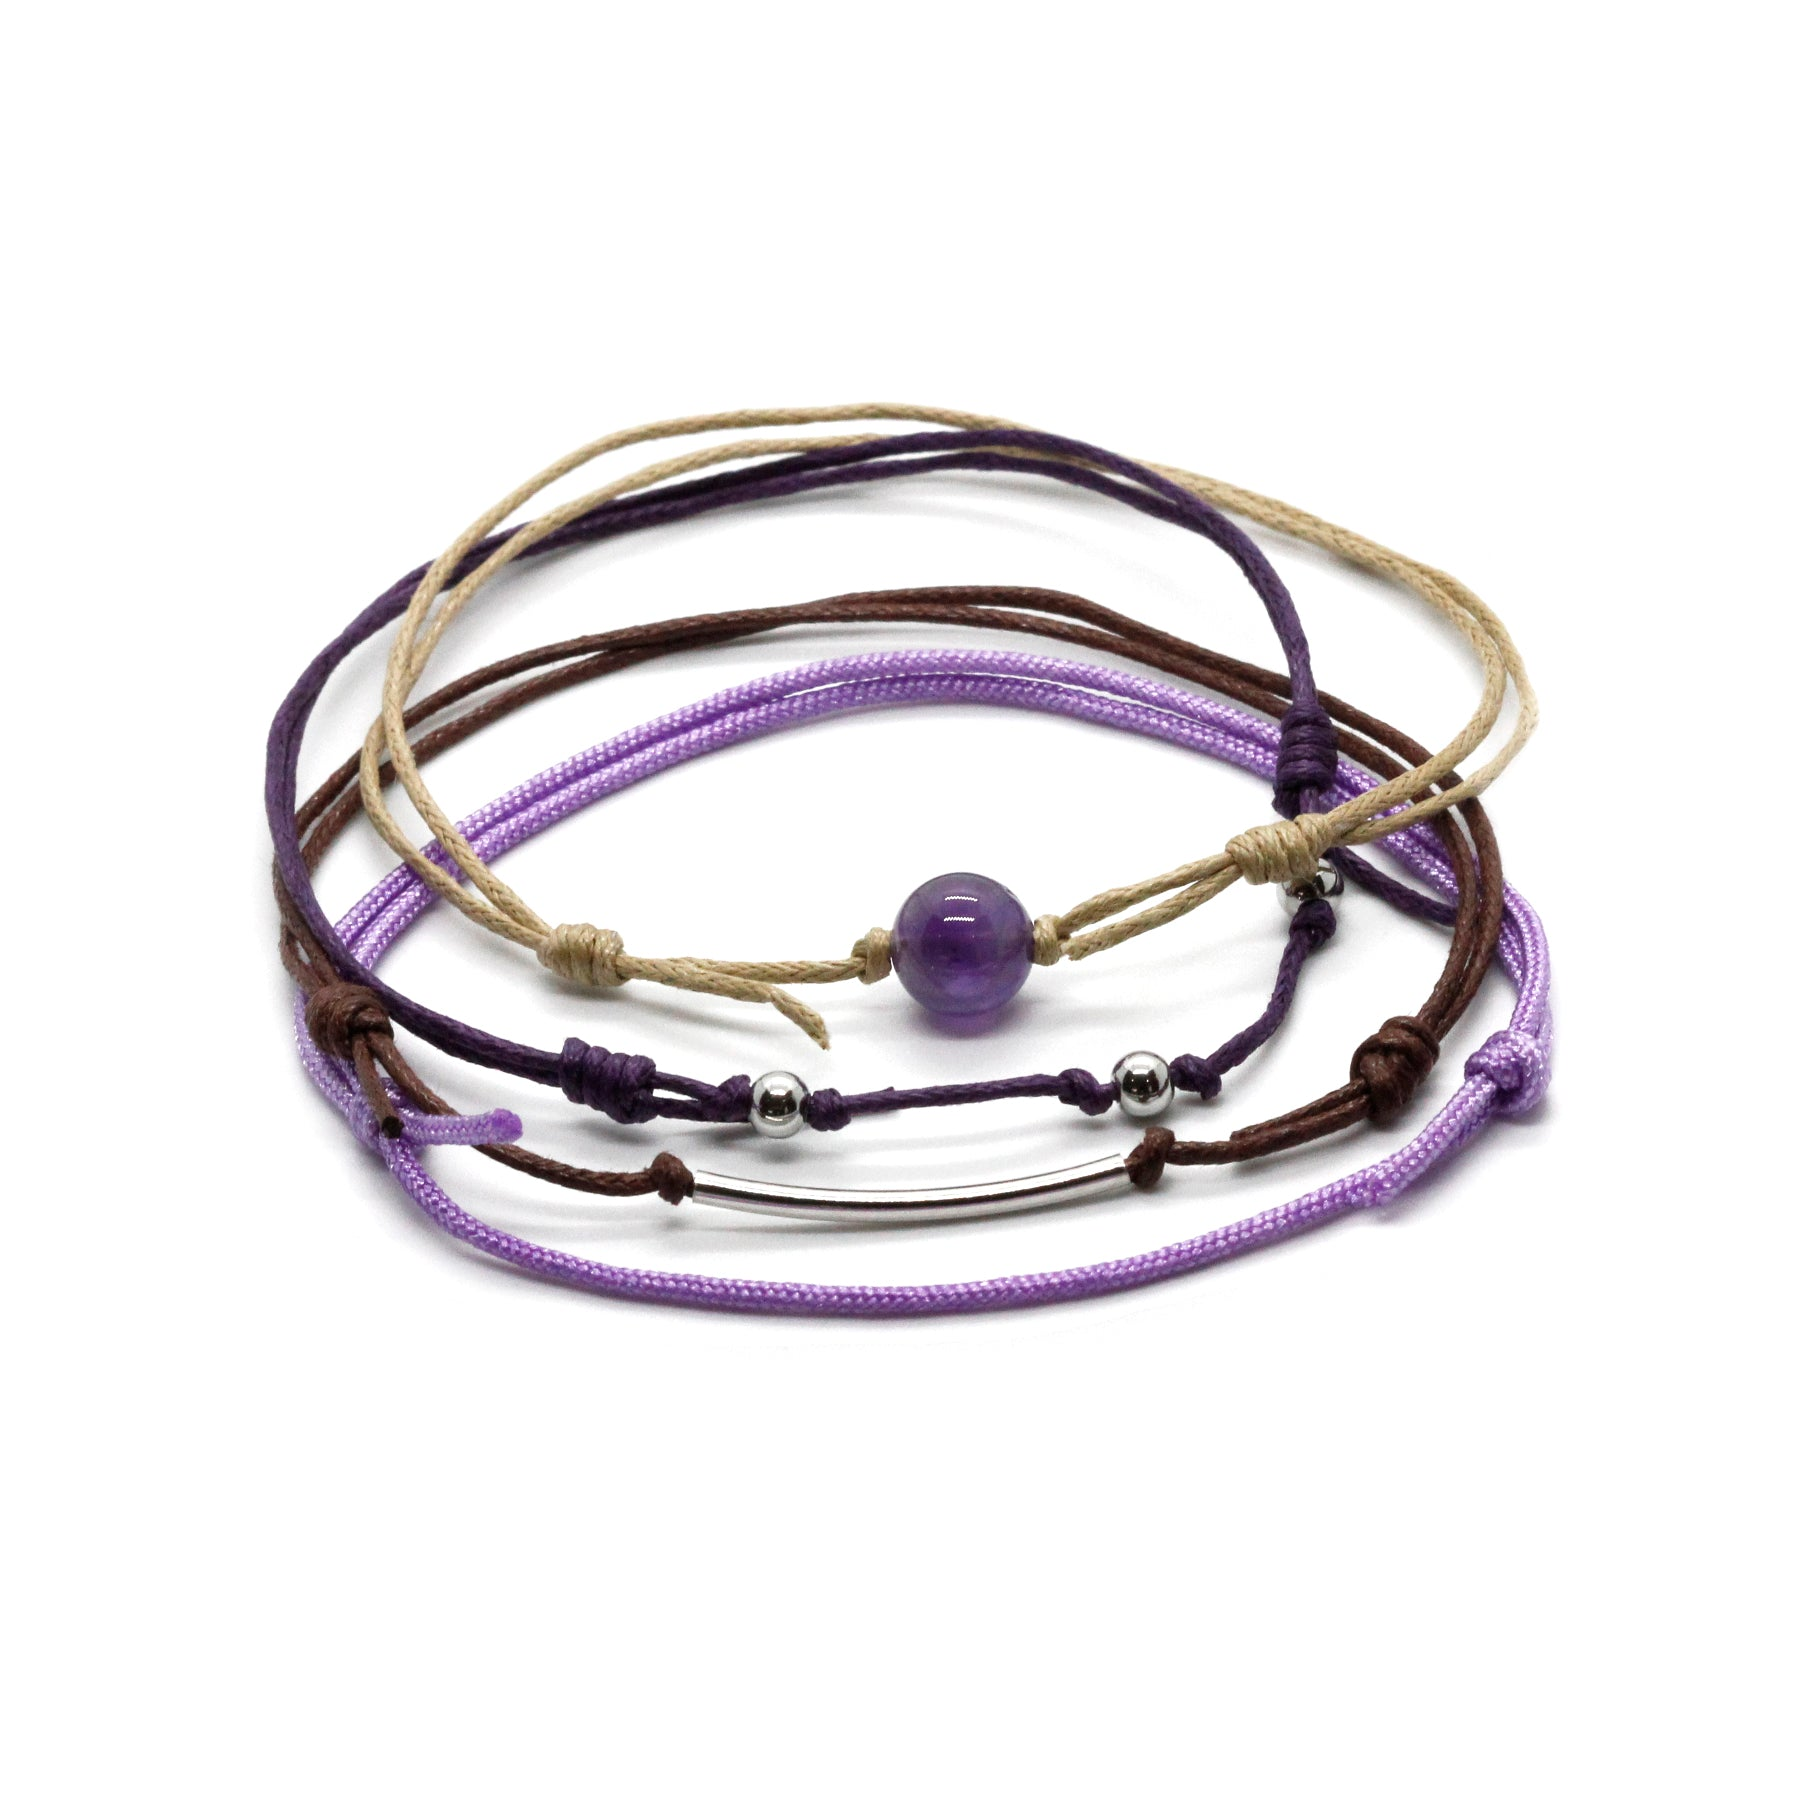 Amethyst Gemstone Anklet - 4 Piece Set - O YEAH GIFTS